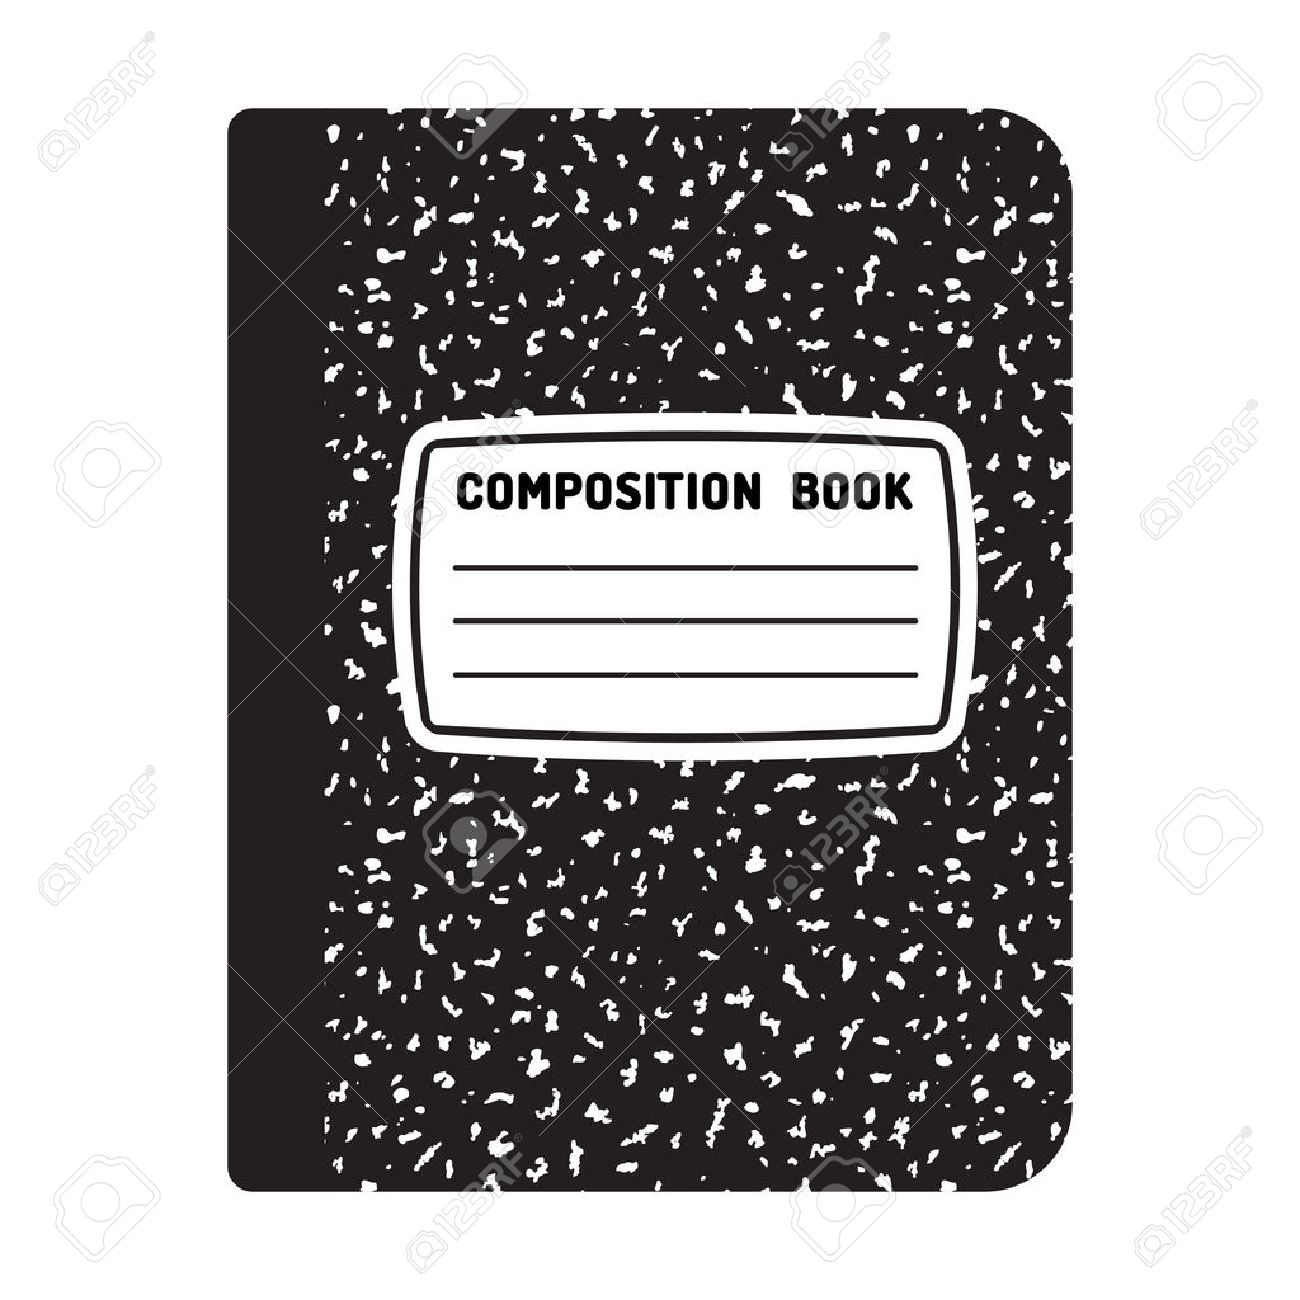 Composition book template. Traditional school notebook illustration..